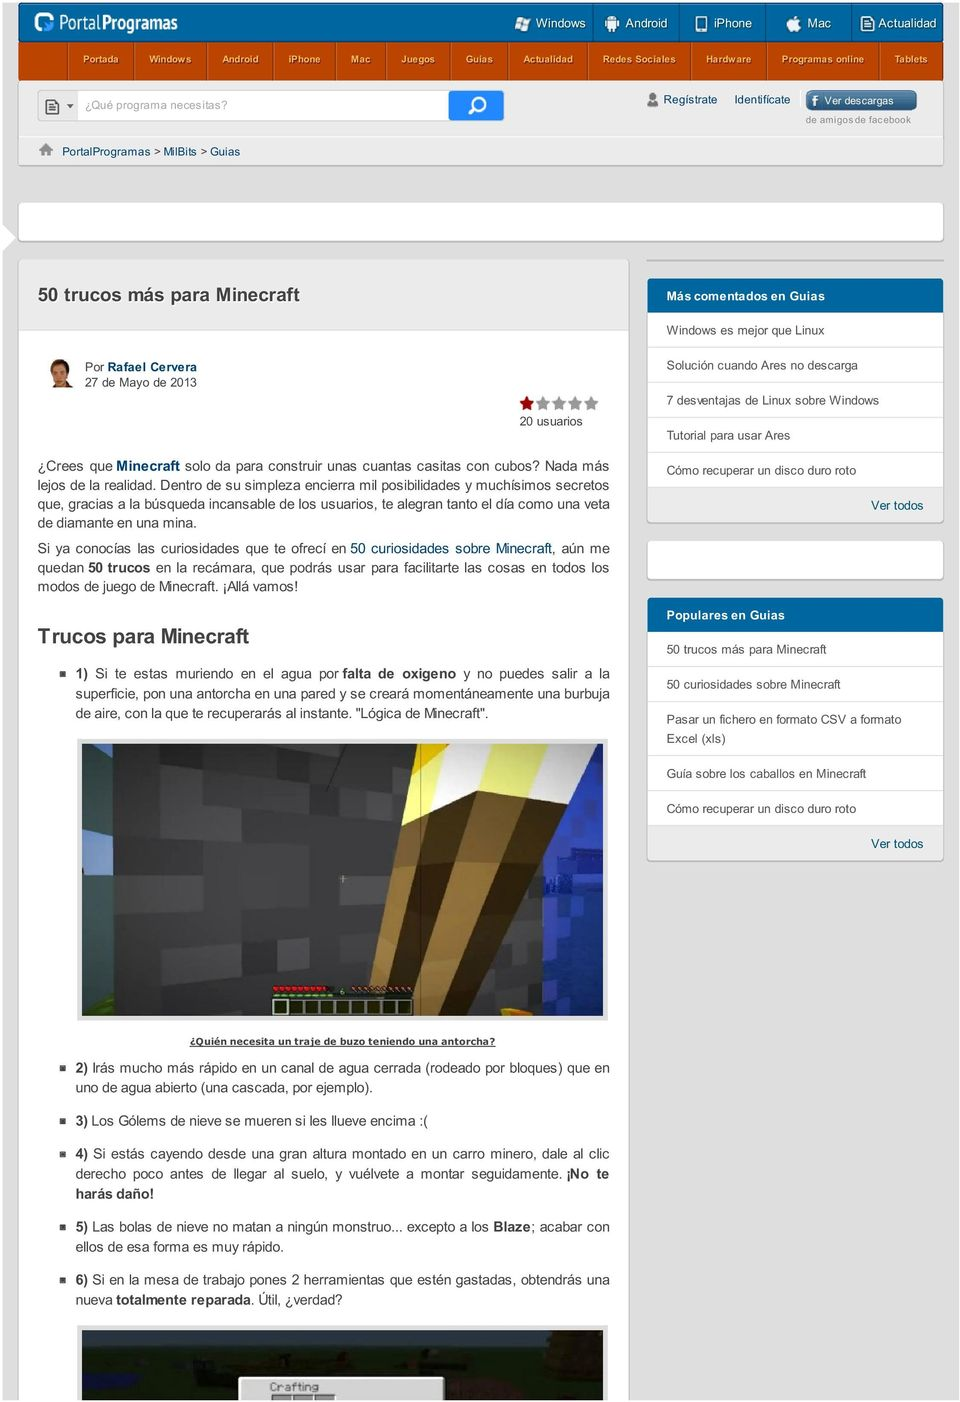 Mayo de 2013 20 usuarios Solución cuando Ares no descarga 7 desventajas de Linux sobre Windows Tutorial para usar Ares Crees que Minecraft solo da para construir unas cuantas casitas con cubos?